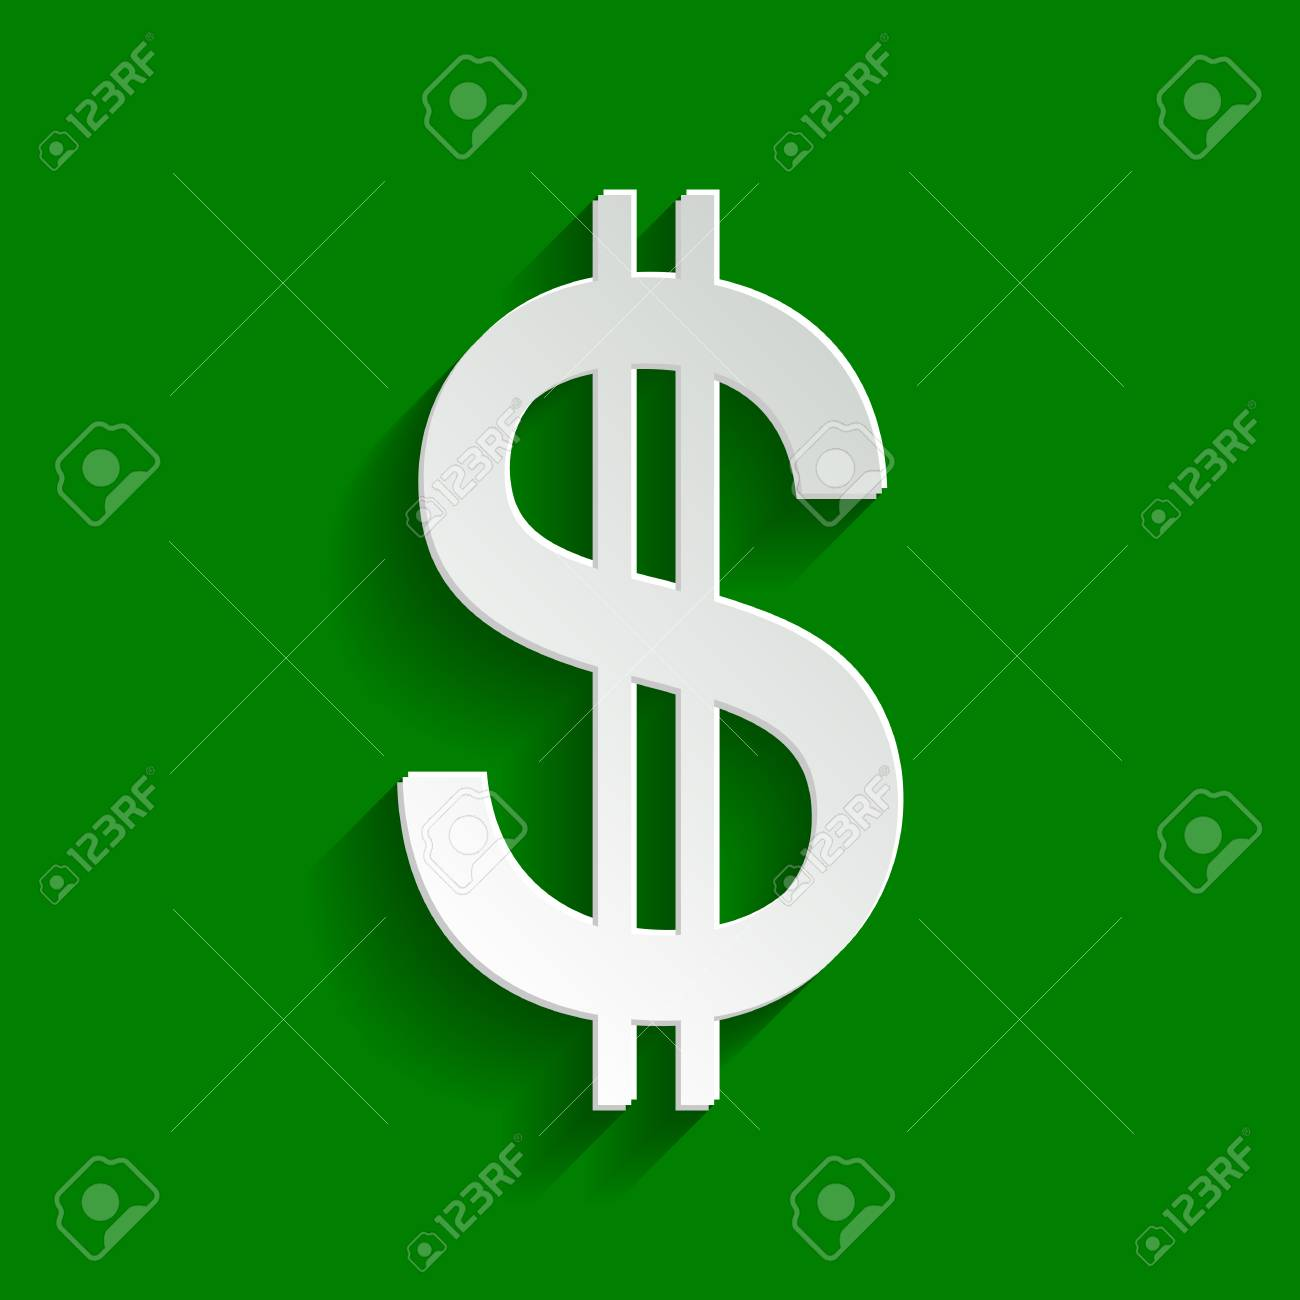 United states Dollar sign  Vector  Paper whitish icon with soft